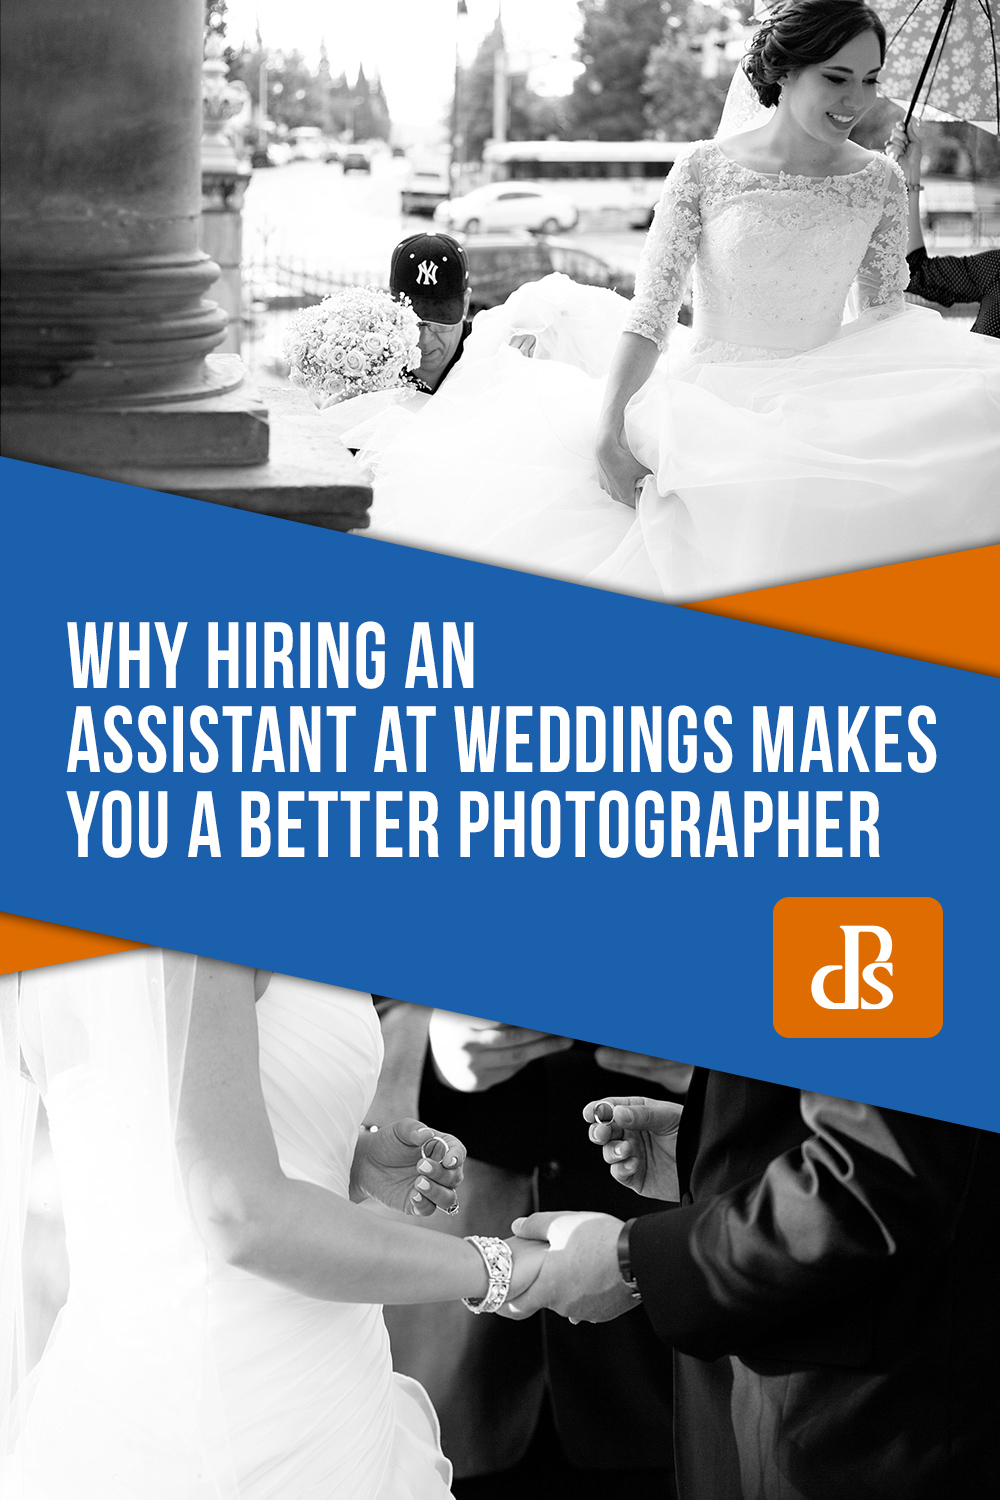 Why Hiring an Assistant at Weddings Makes you a Better Photographer